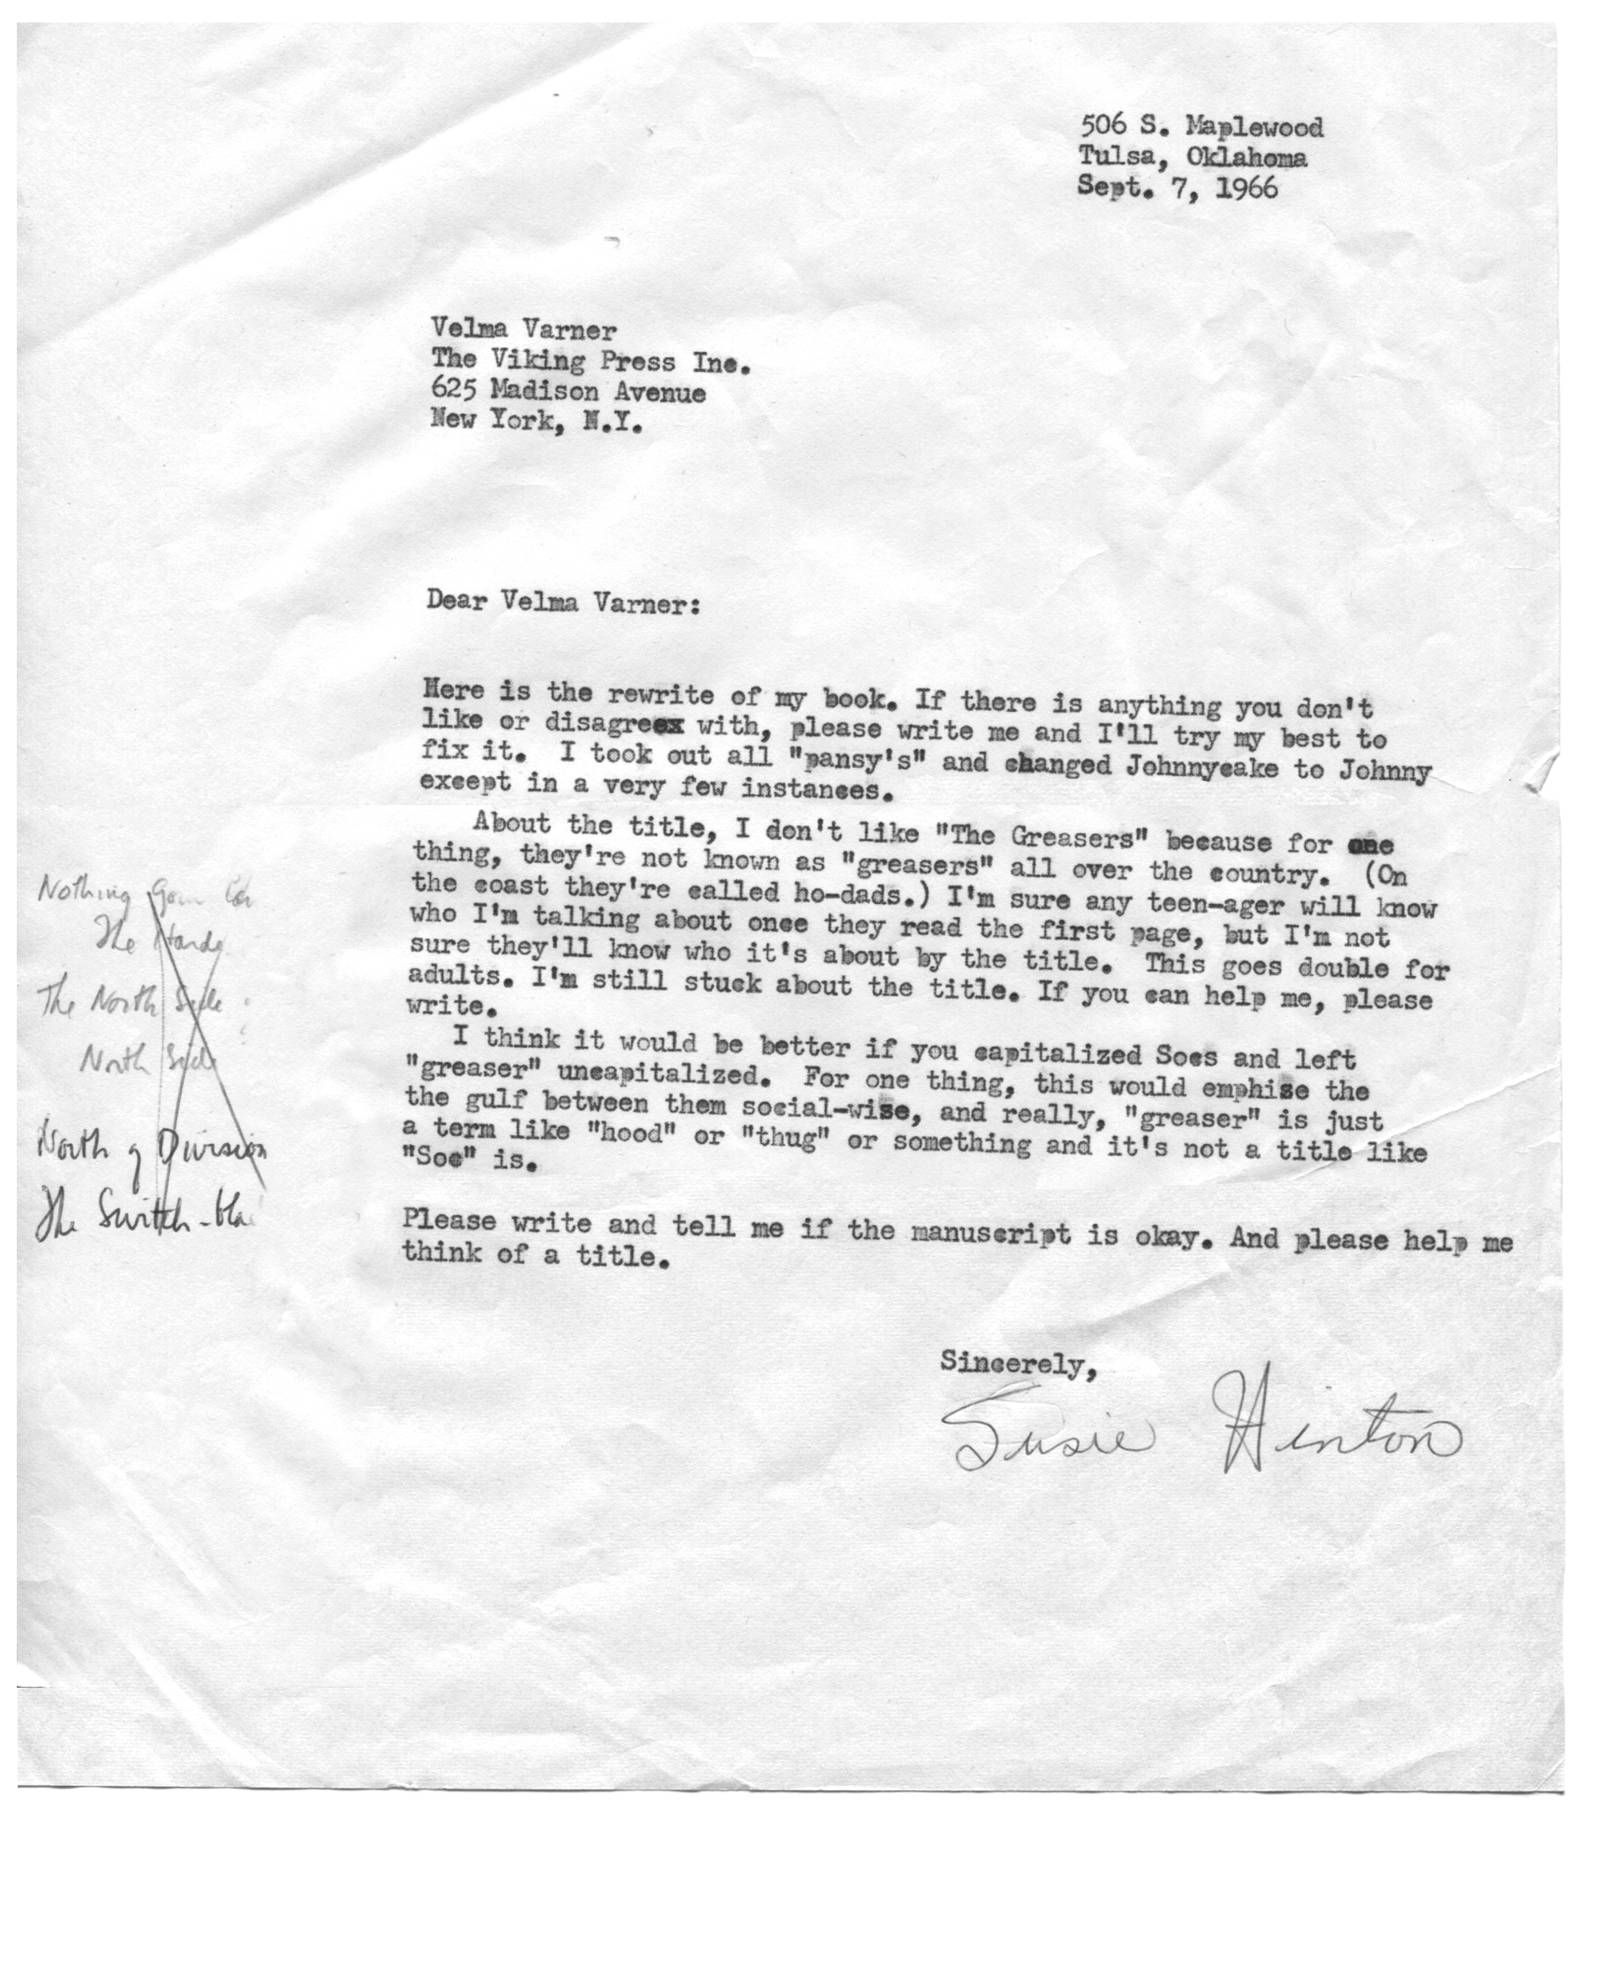 Outsiders Essay Questions Read S E Hinton S 1966 Letter To Her Editor About What To Call